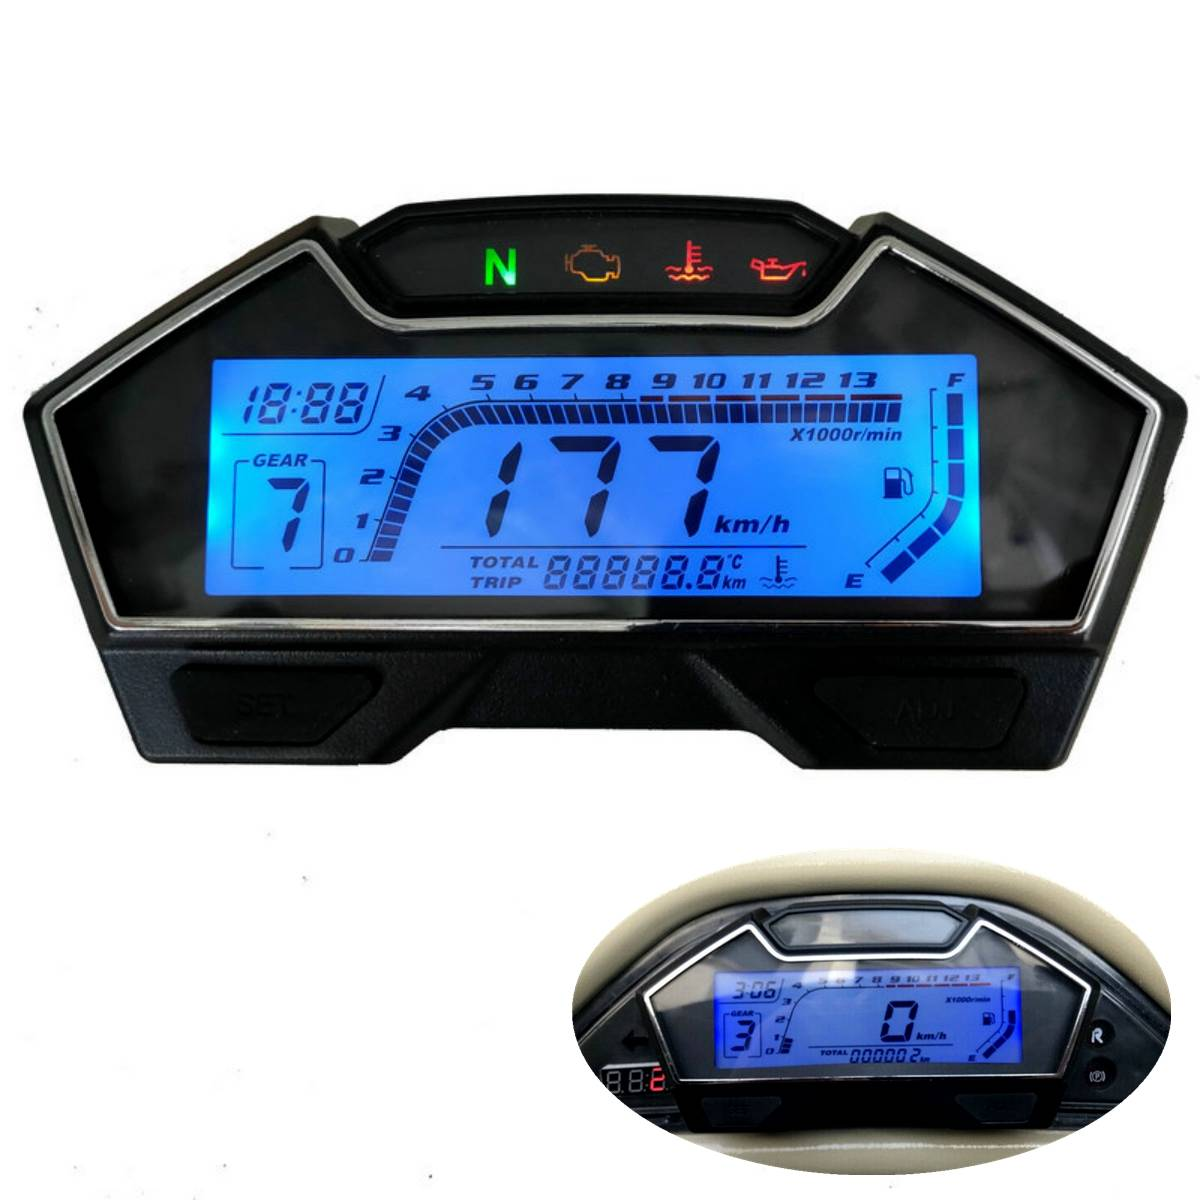 NEW Universal LCD Speedometer Digital Backlight Odometer For <font><b>1</b></font>,<font><b>2</b></font>,4 Cylinders Motorcycle For Ducati for Kawasaki for Yamaha image